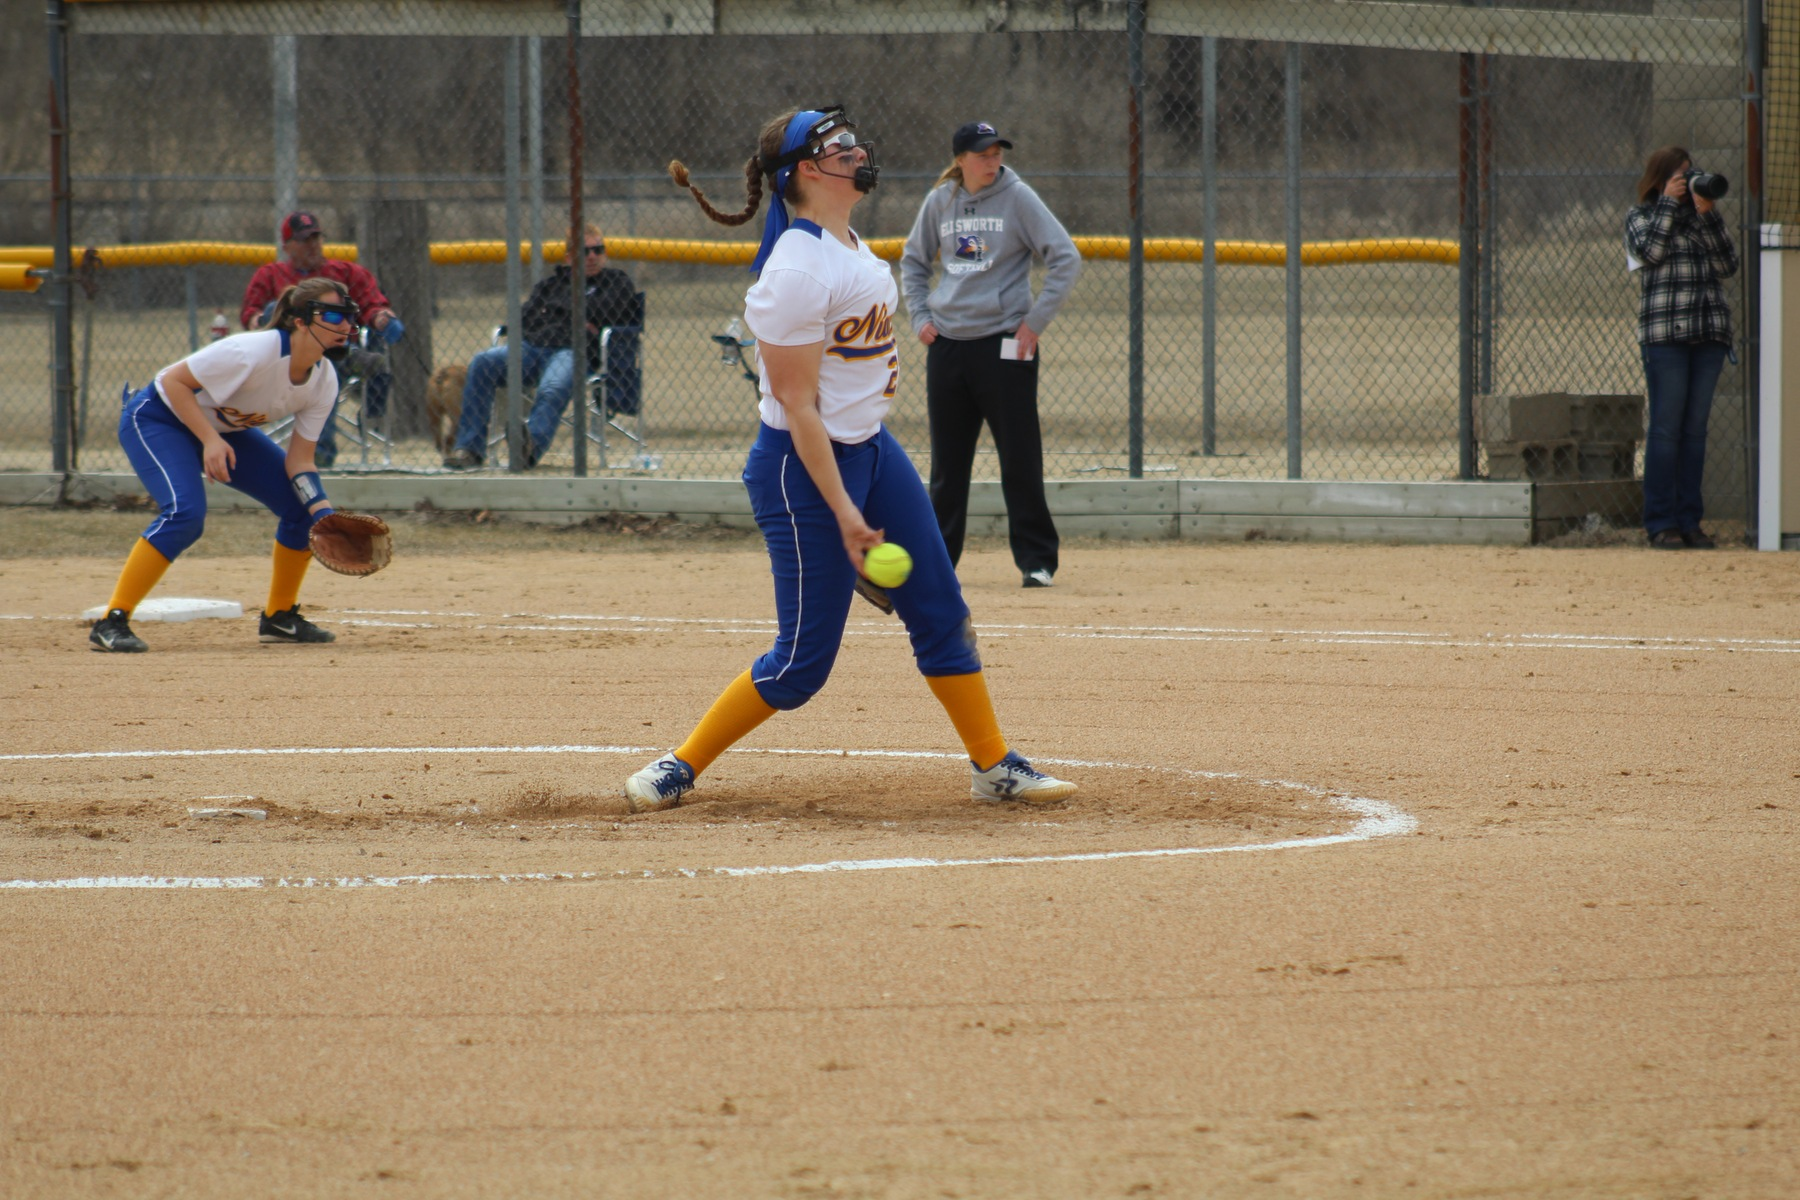 Alyssa Laxson delivers a pitch in first game of Thursday's twinbill.